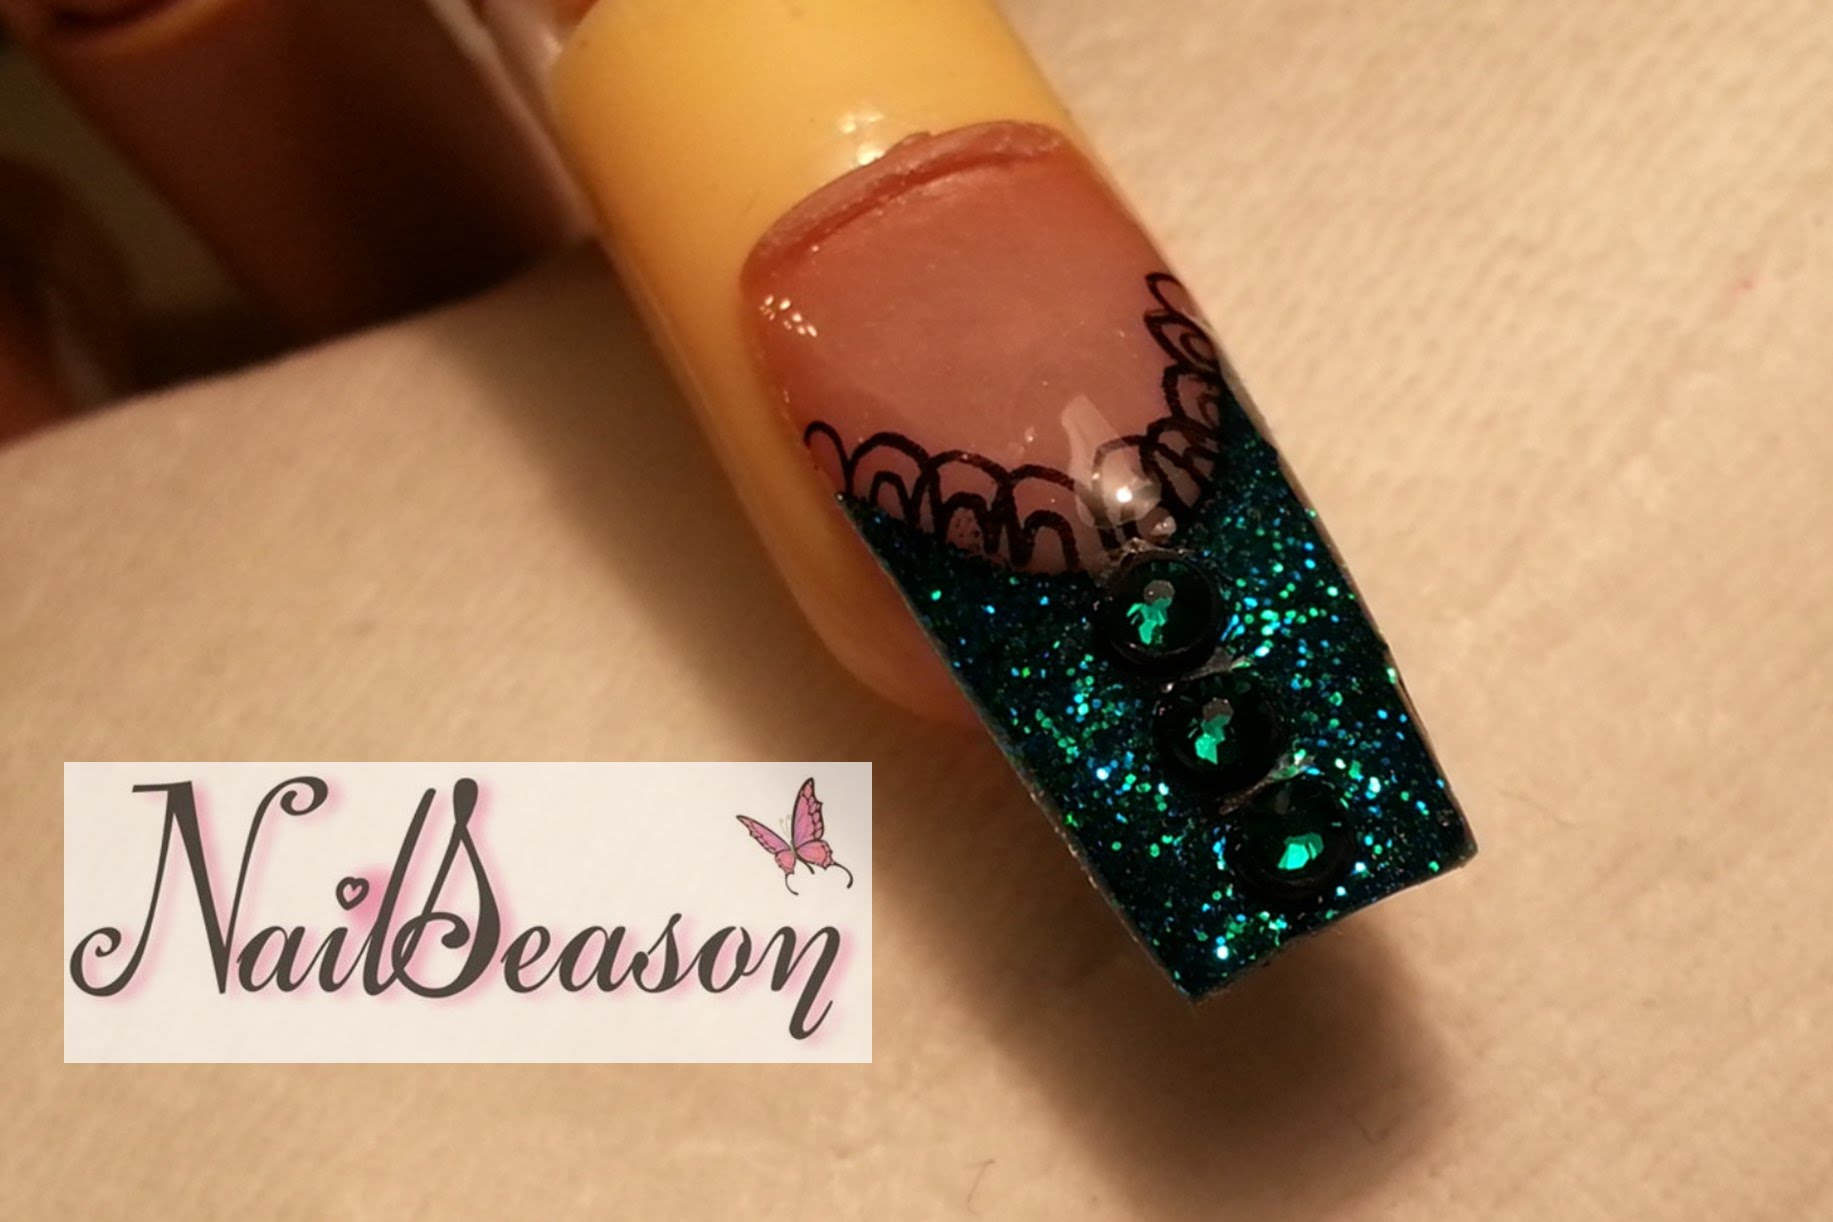 Diy acrylic nail designs sparkles lace and rhinestones solutioingenieria Image collections